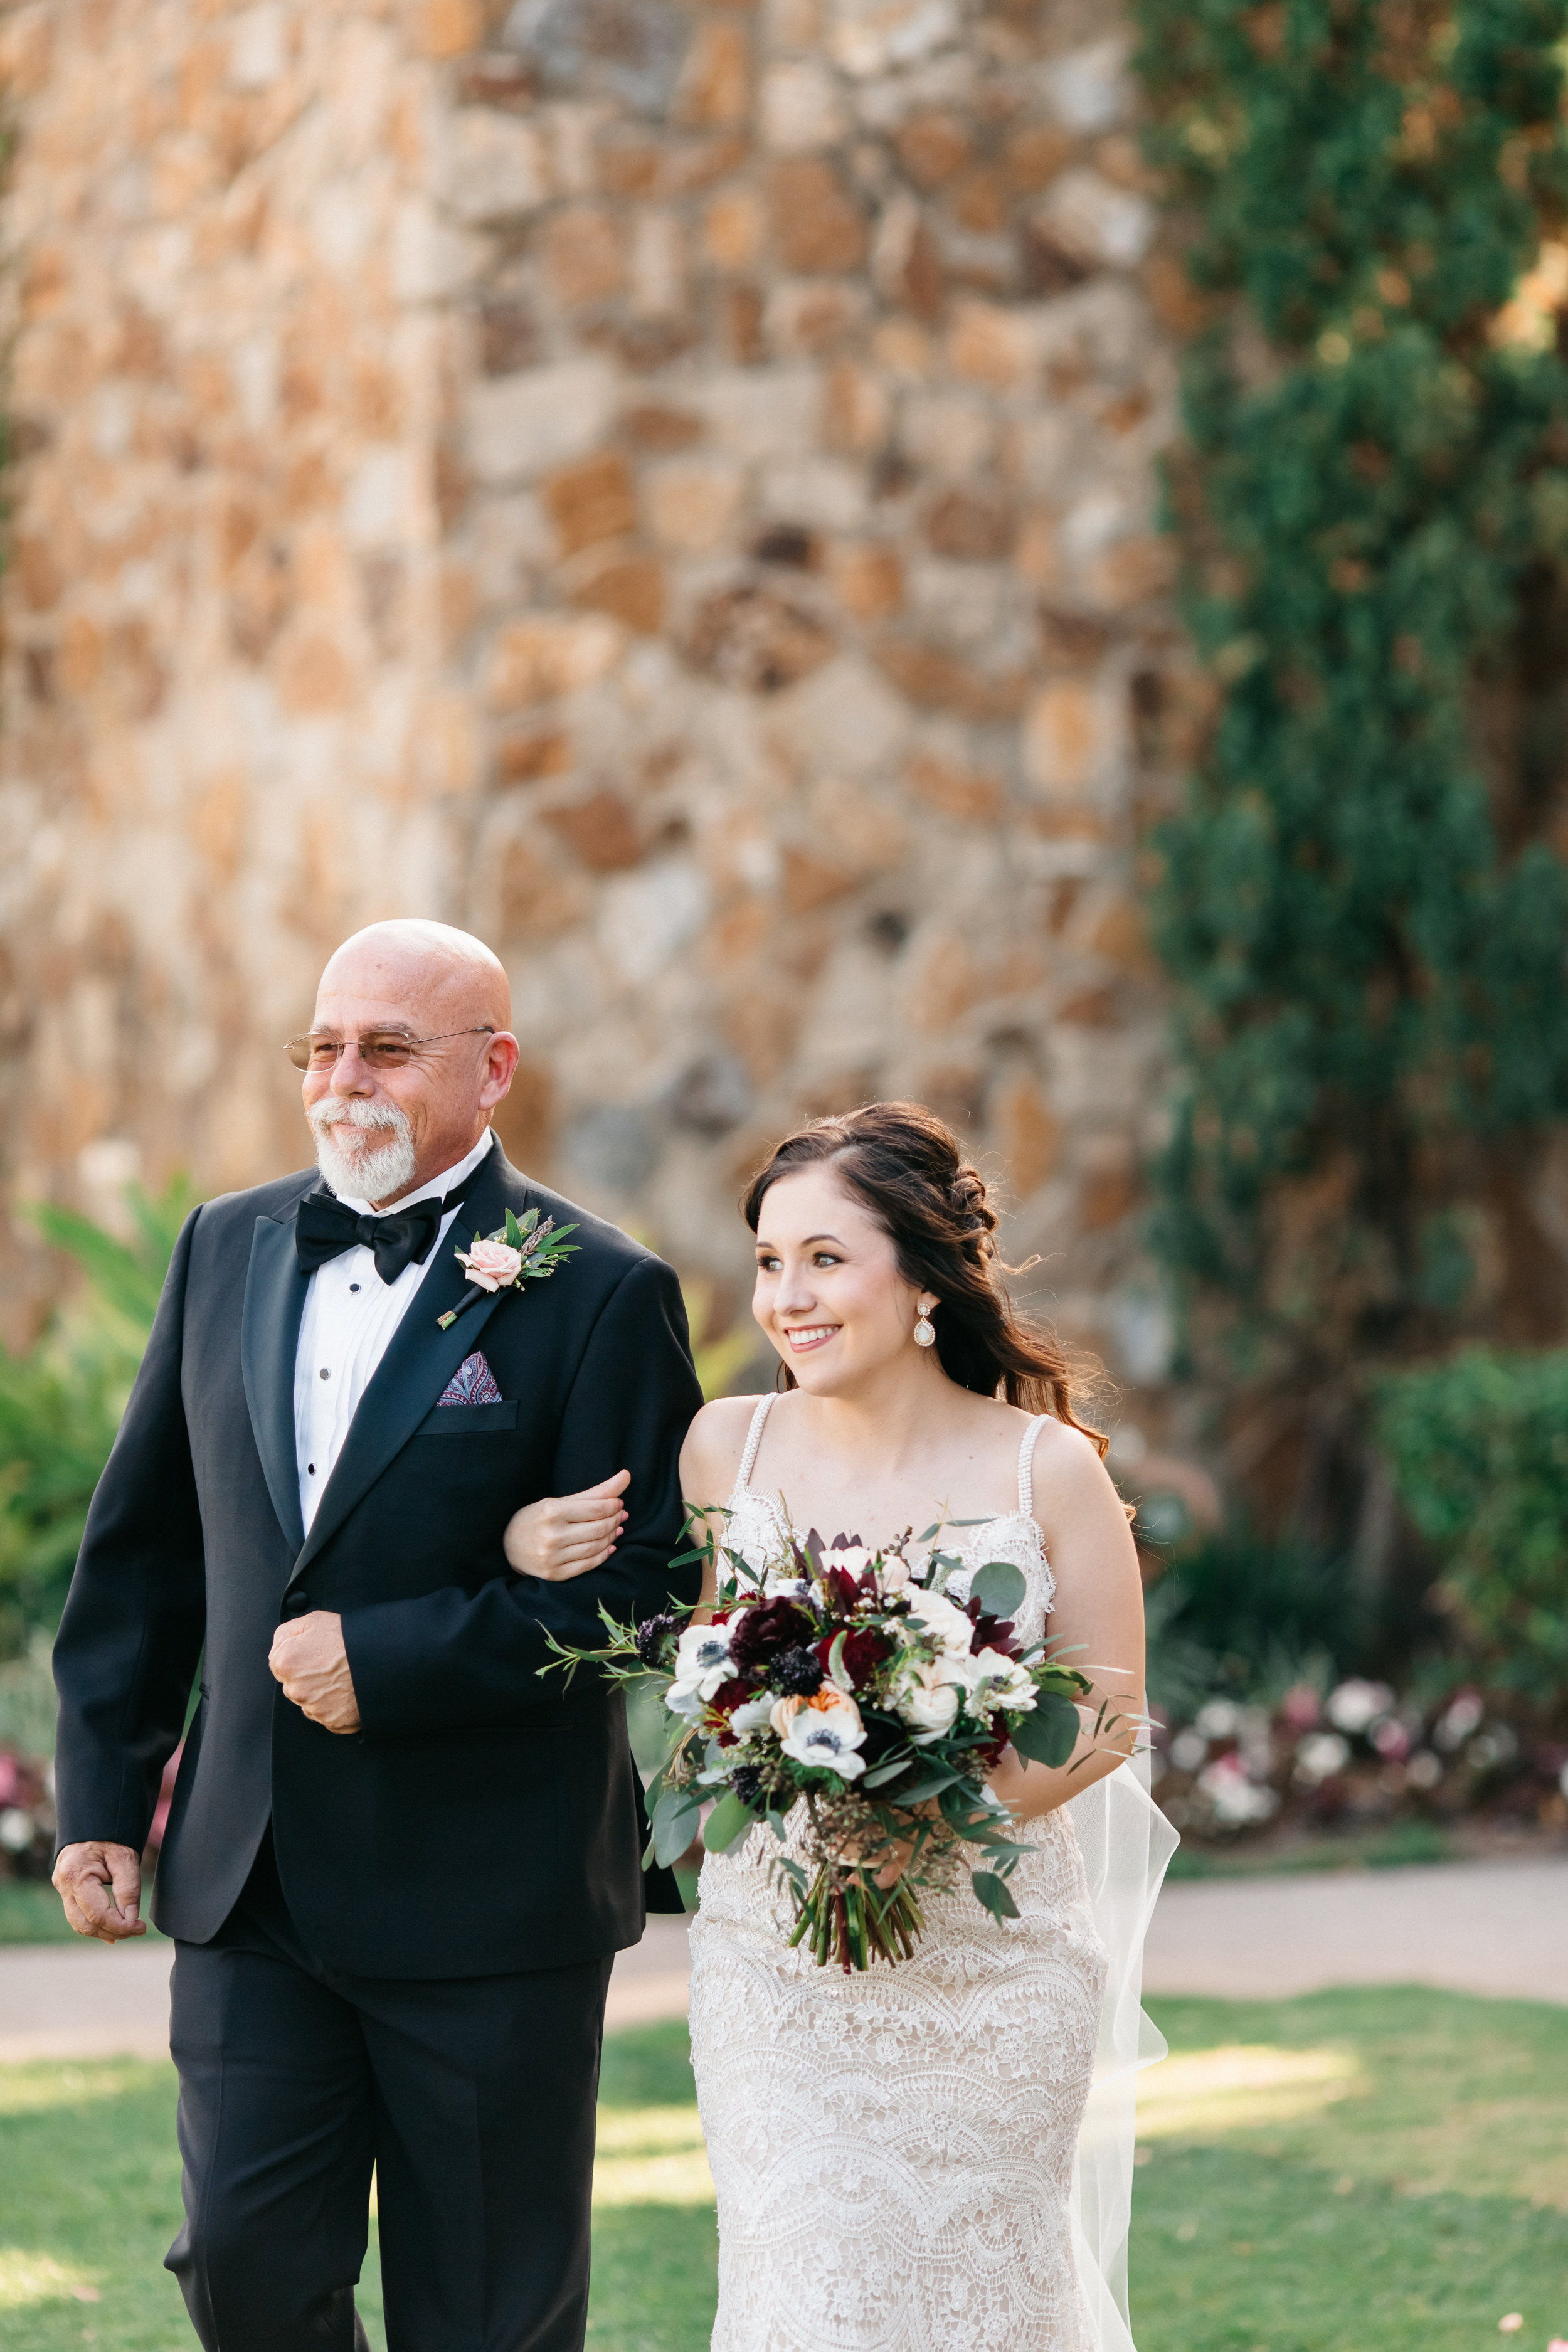 Sammy and her father escorting her down the aisle, Bella Collina Wedding